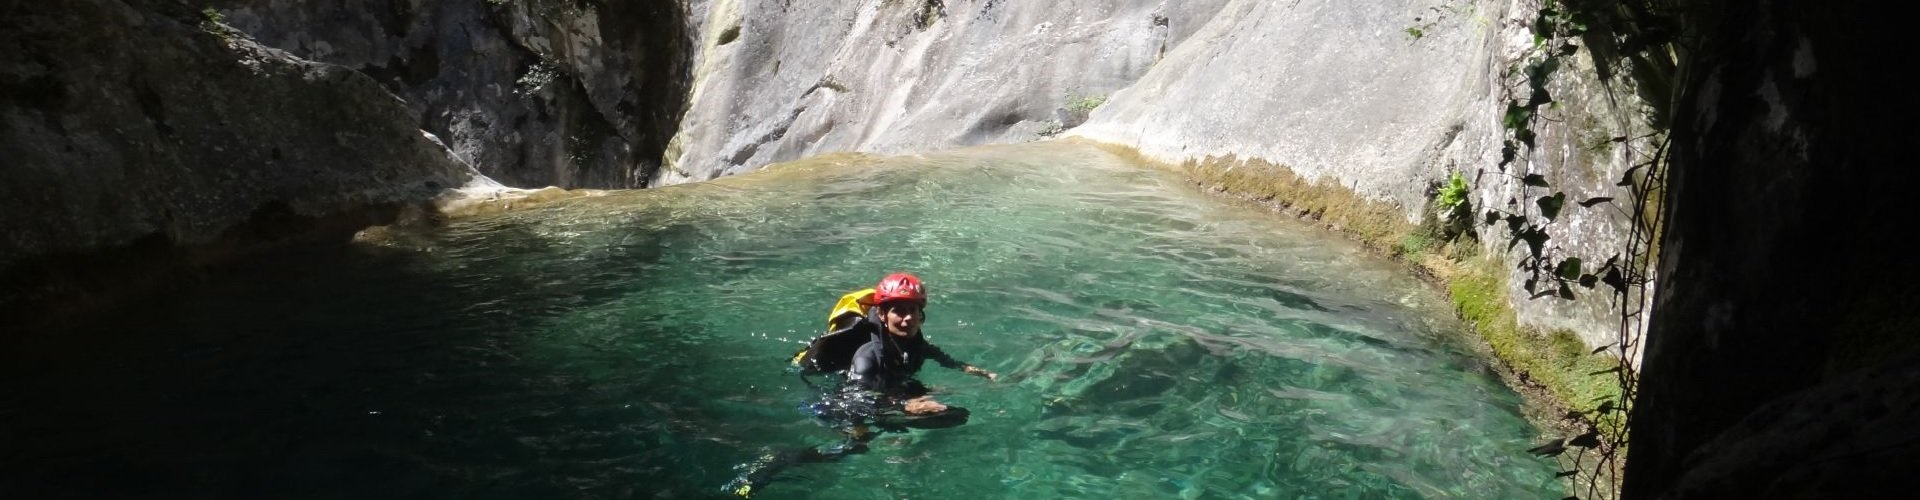 Canyoning Italien / Frankreich